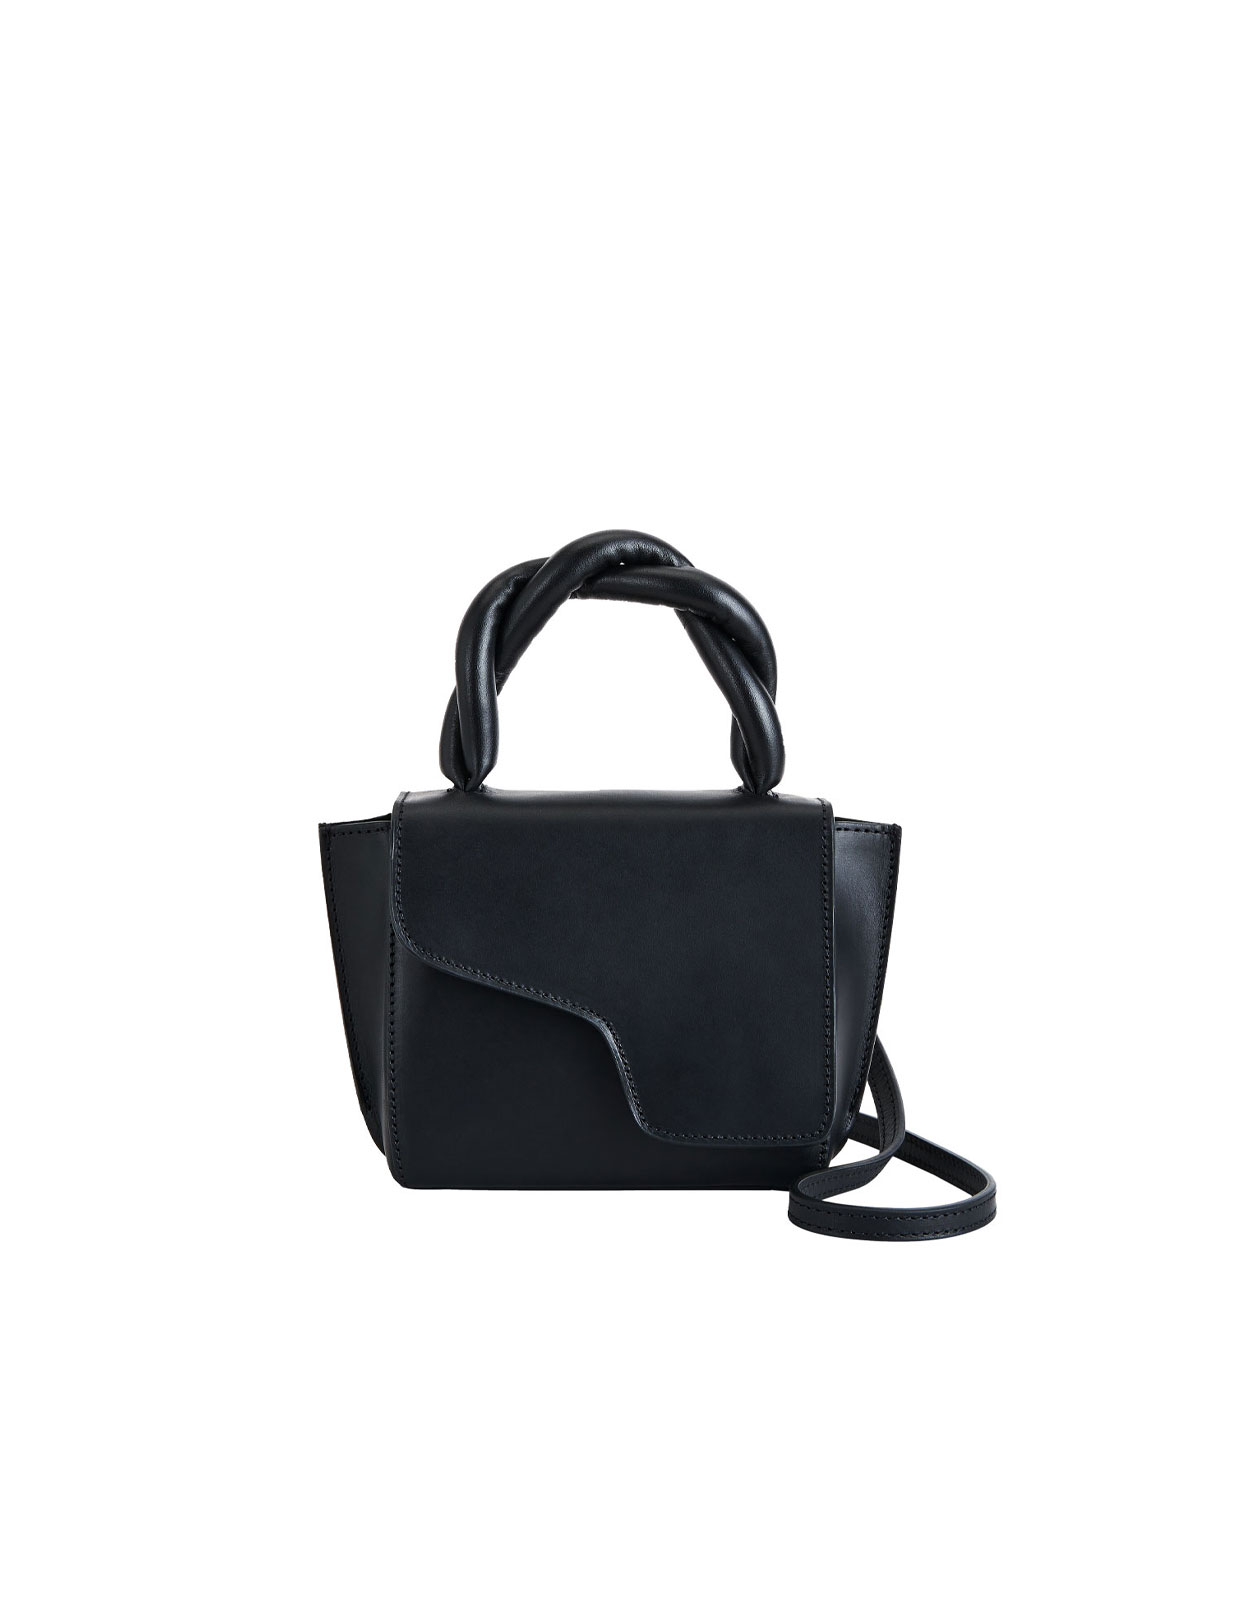 Montalbano Mini Handbag Black